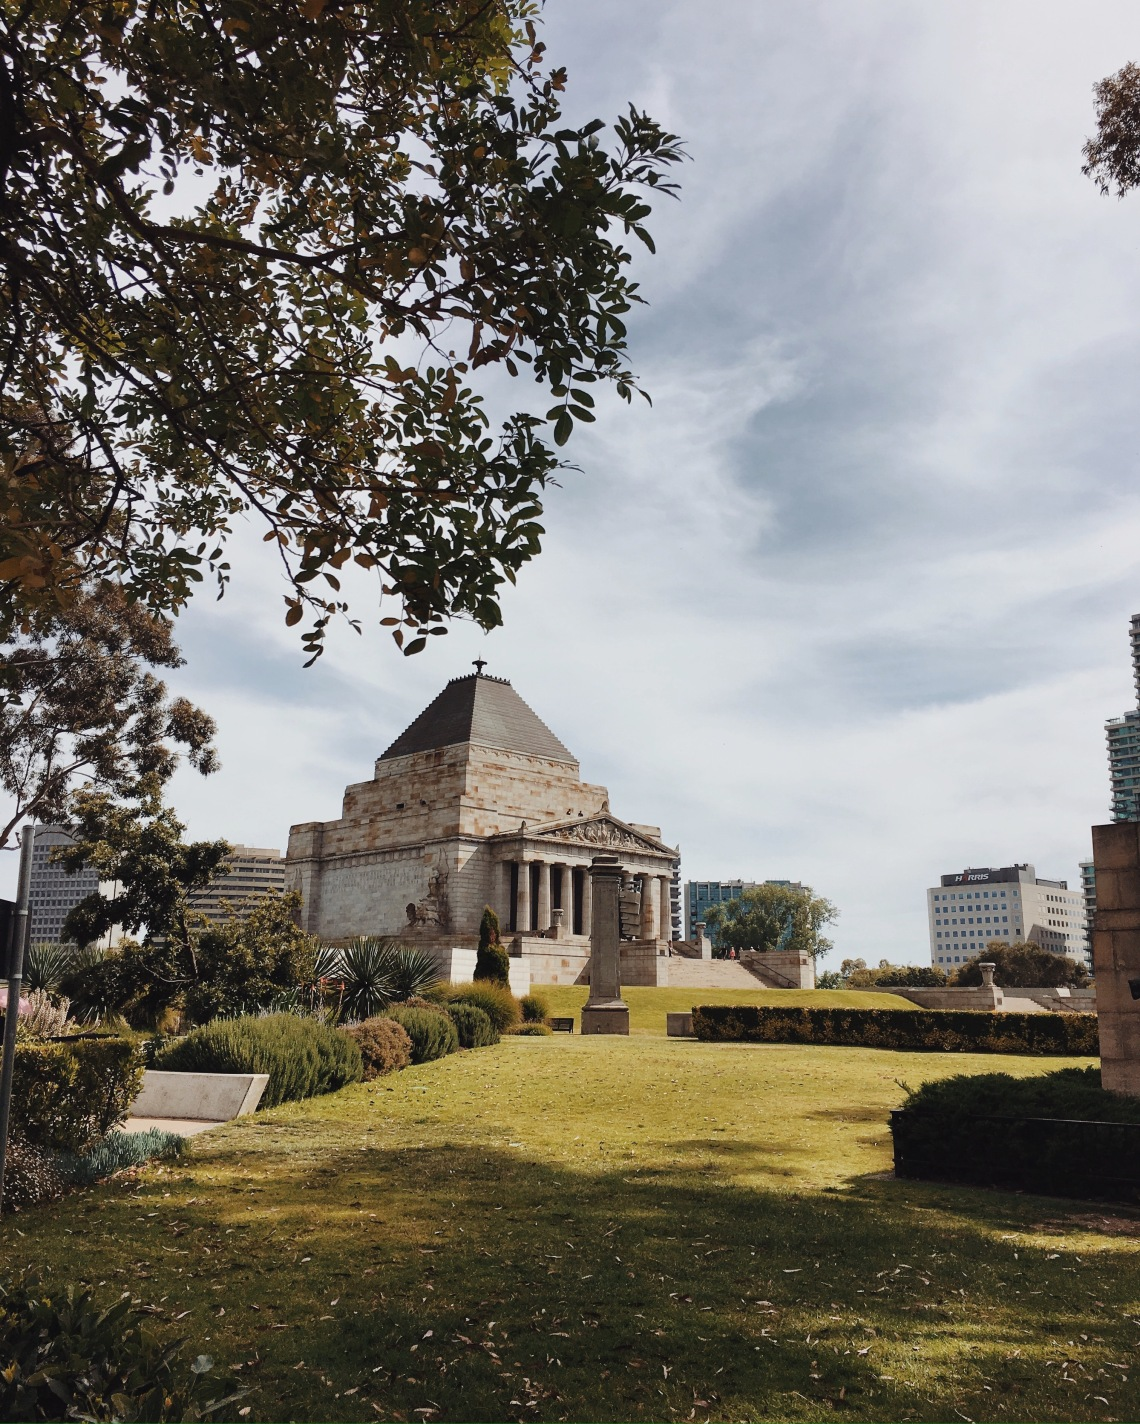 Shrine of Remembrance, one of Melbourne's landmarks